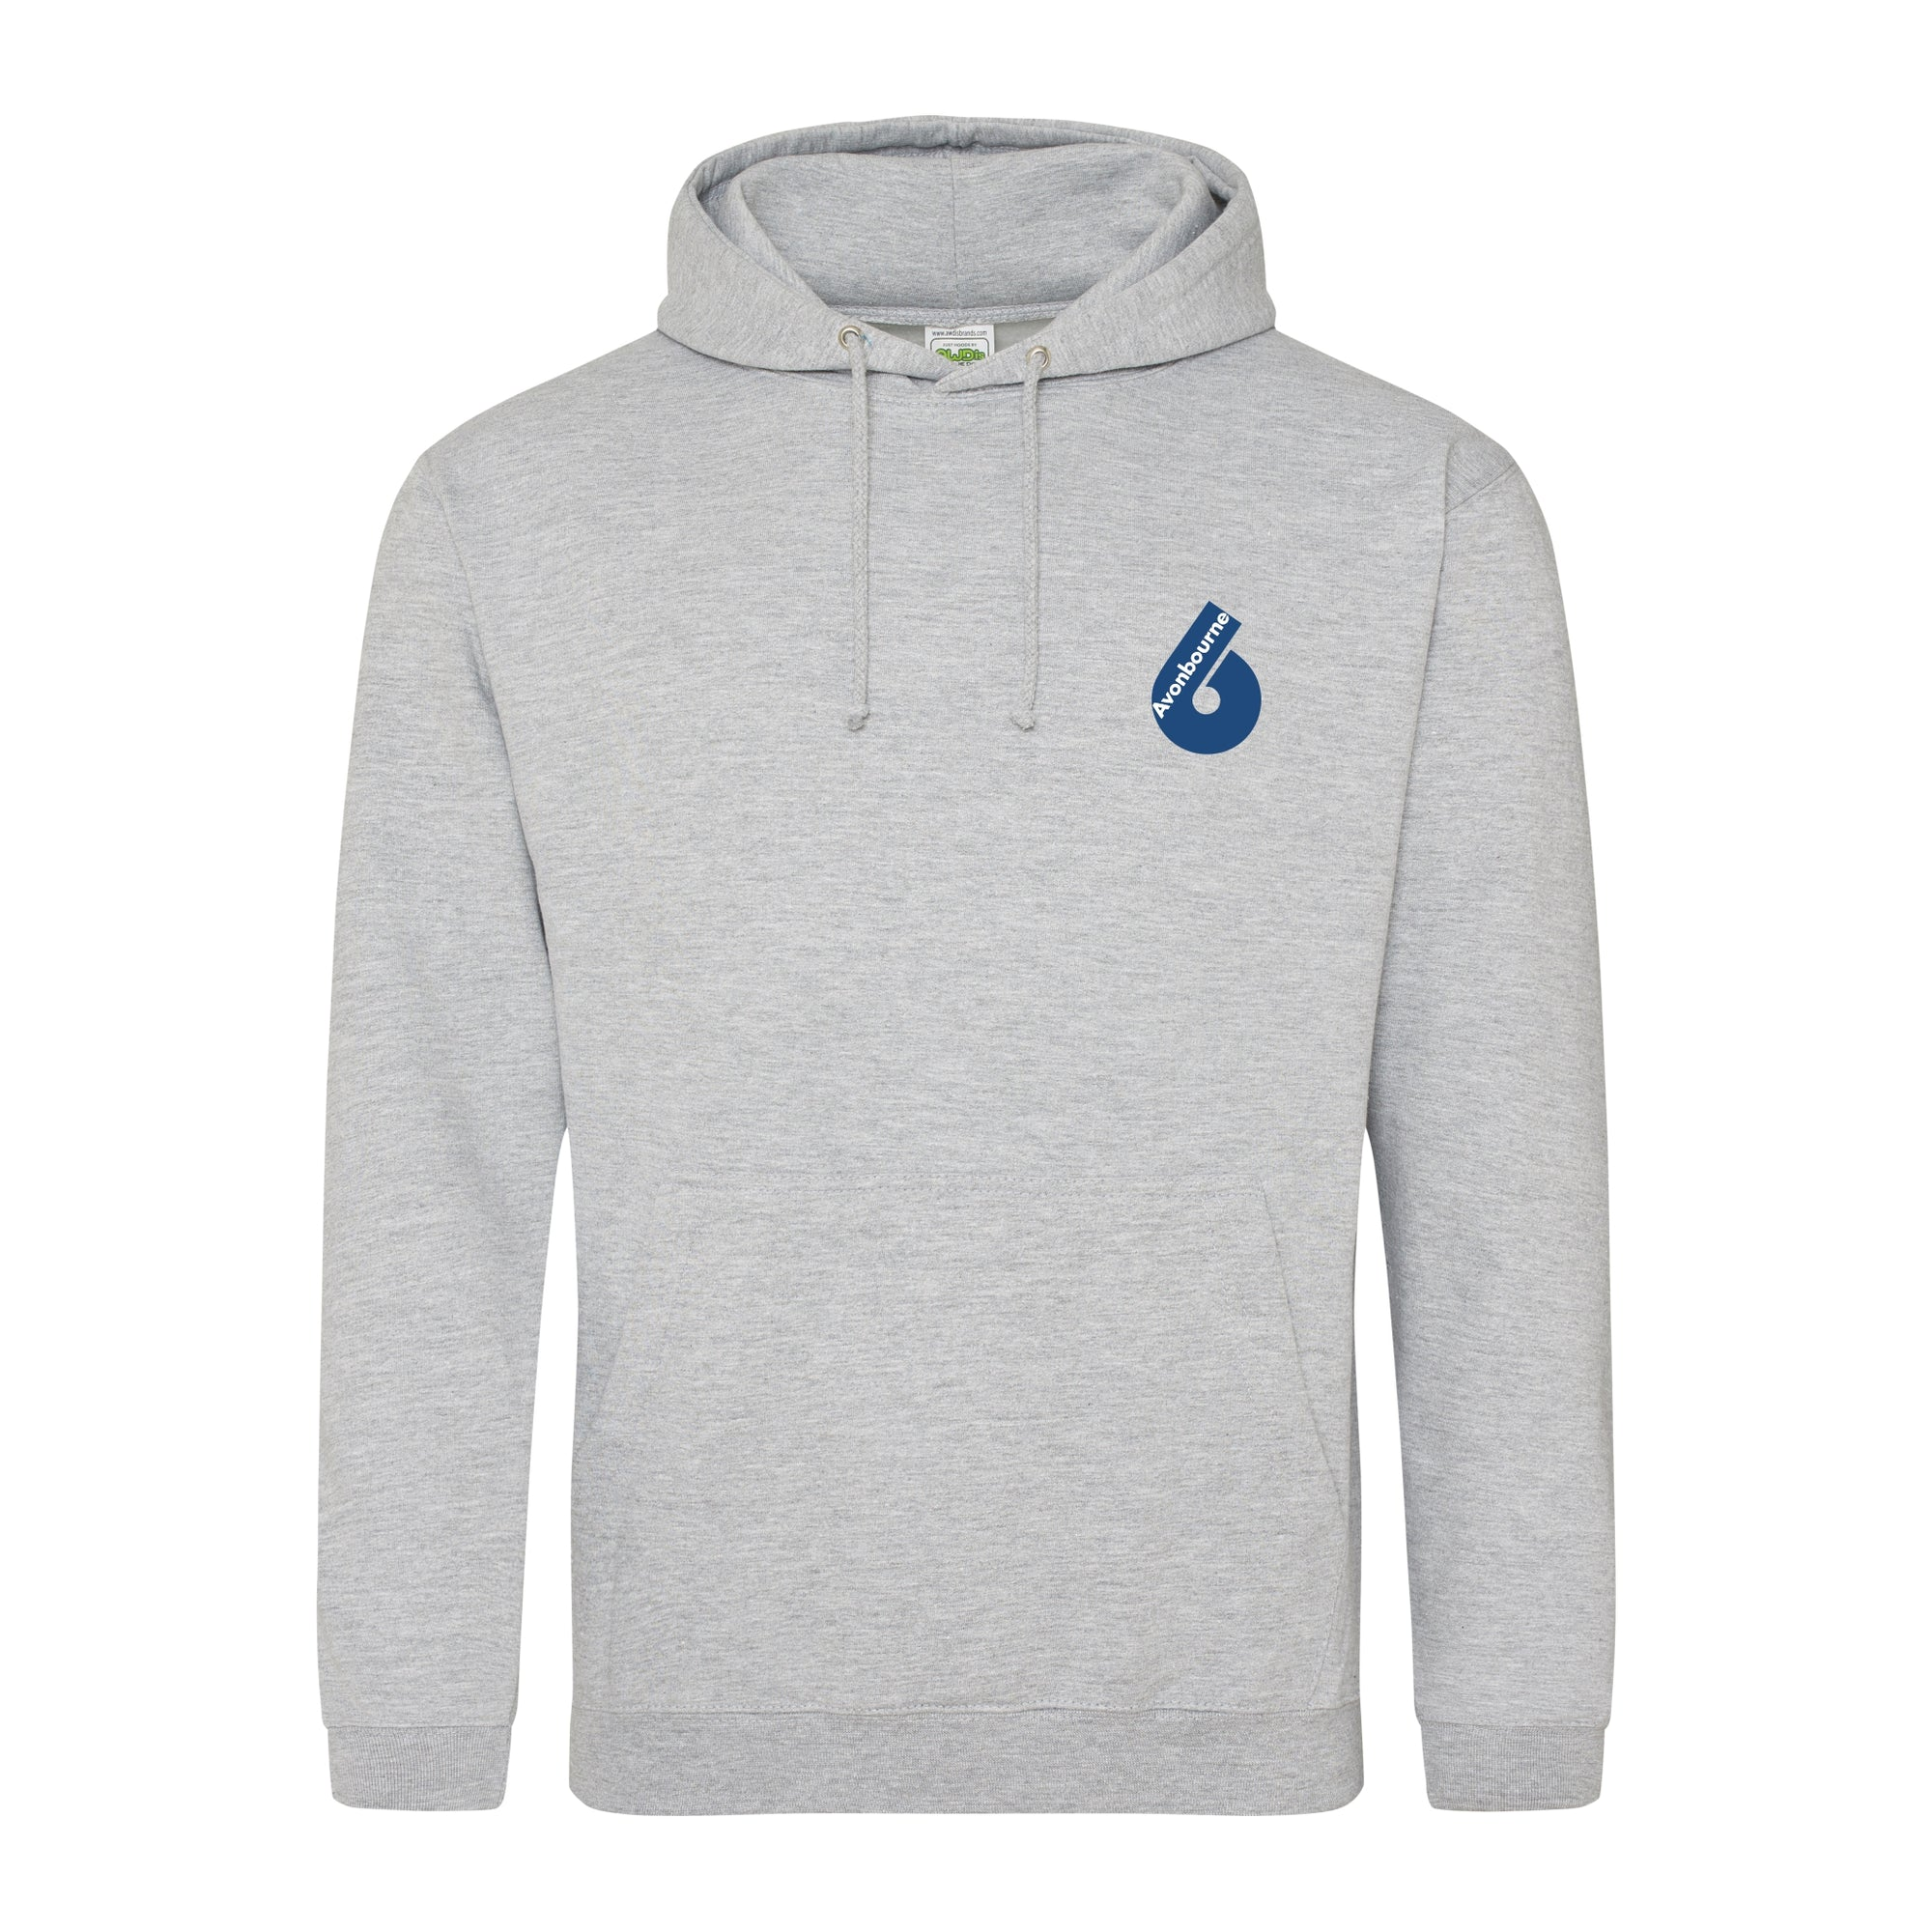 Avonbourne 6th Form Leavers Hoody 2019 - Heather Grey